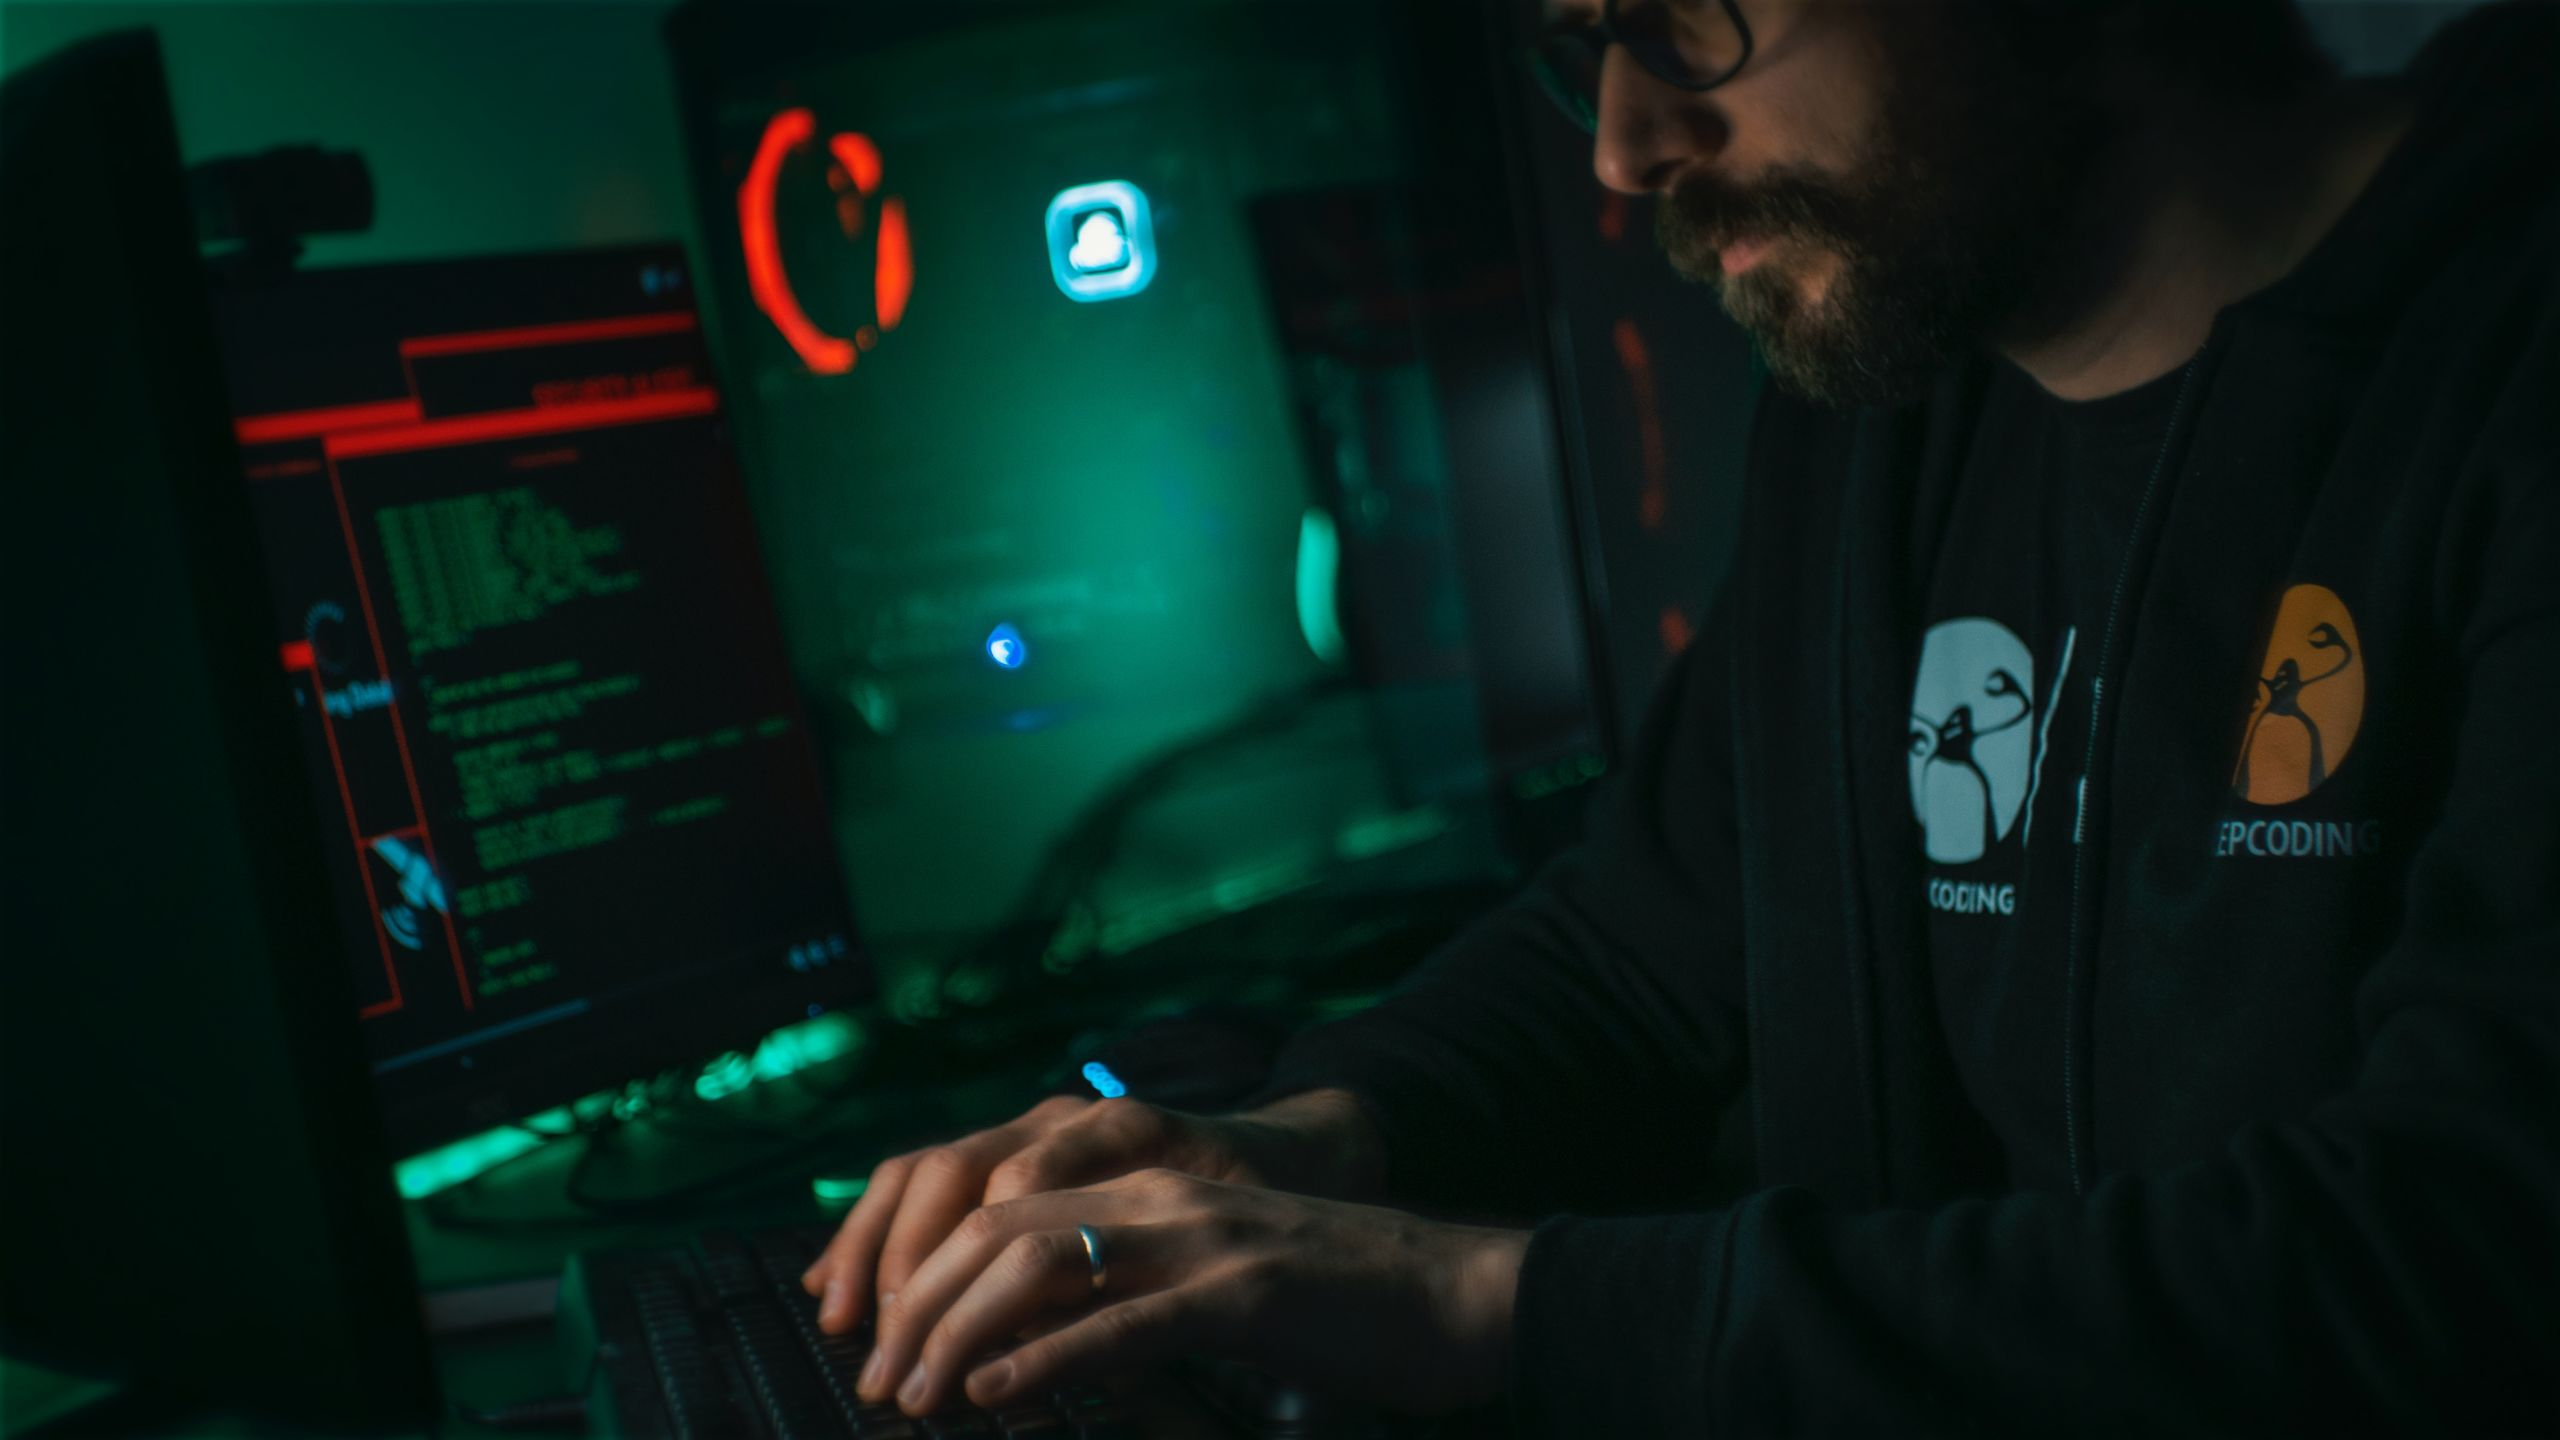 Protect Your Business, Cyberattacks are a growing concern for small businesses